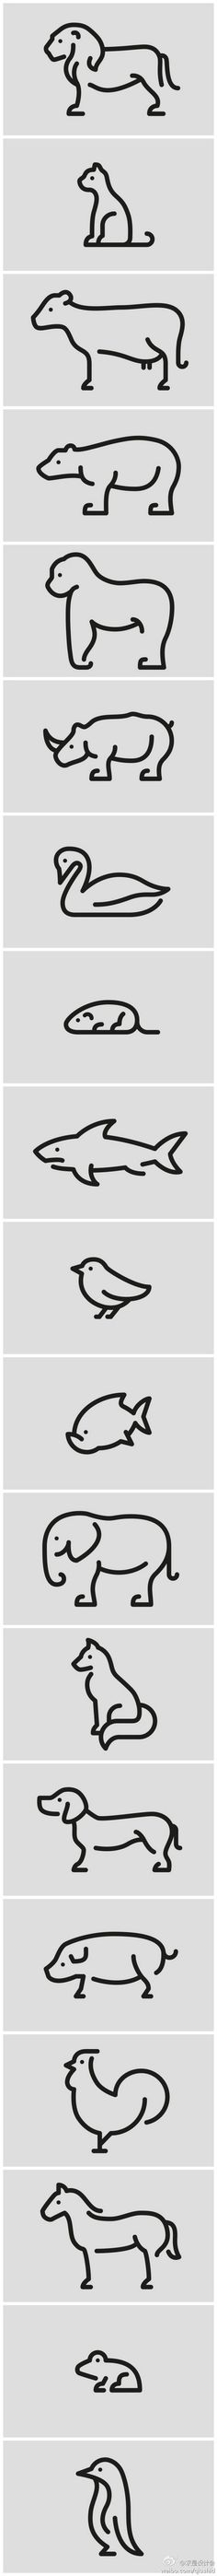 inspiration!  - -  Pictograms via  weibo #Pictogram